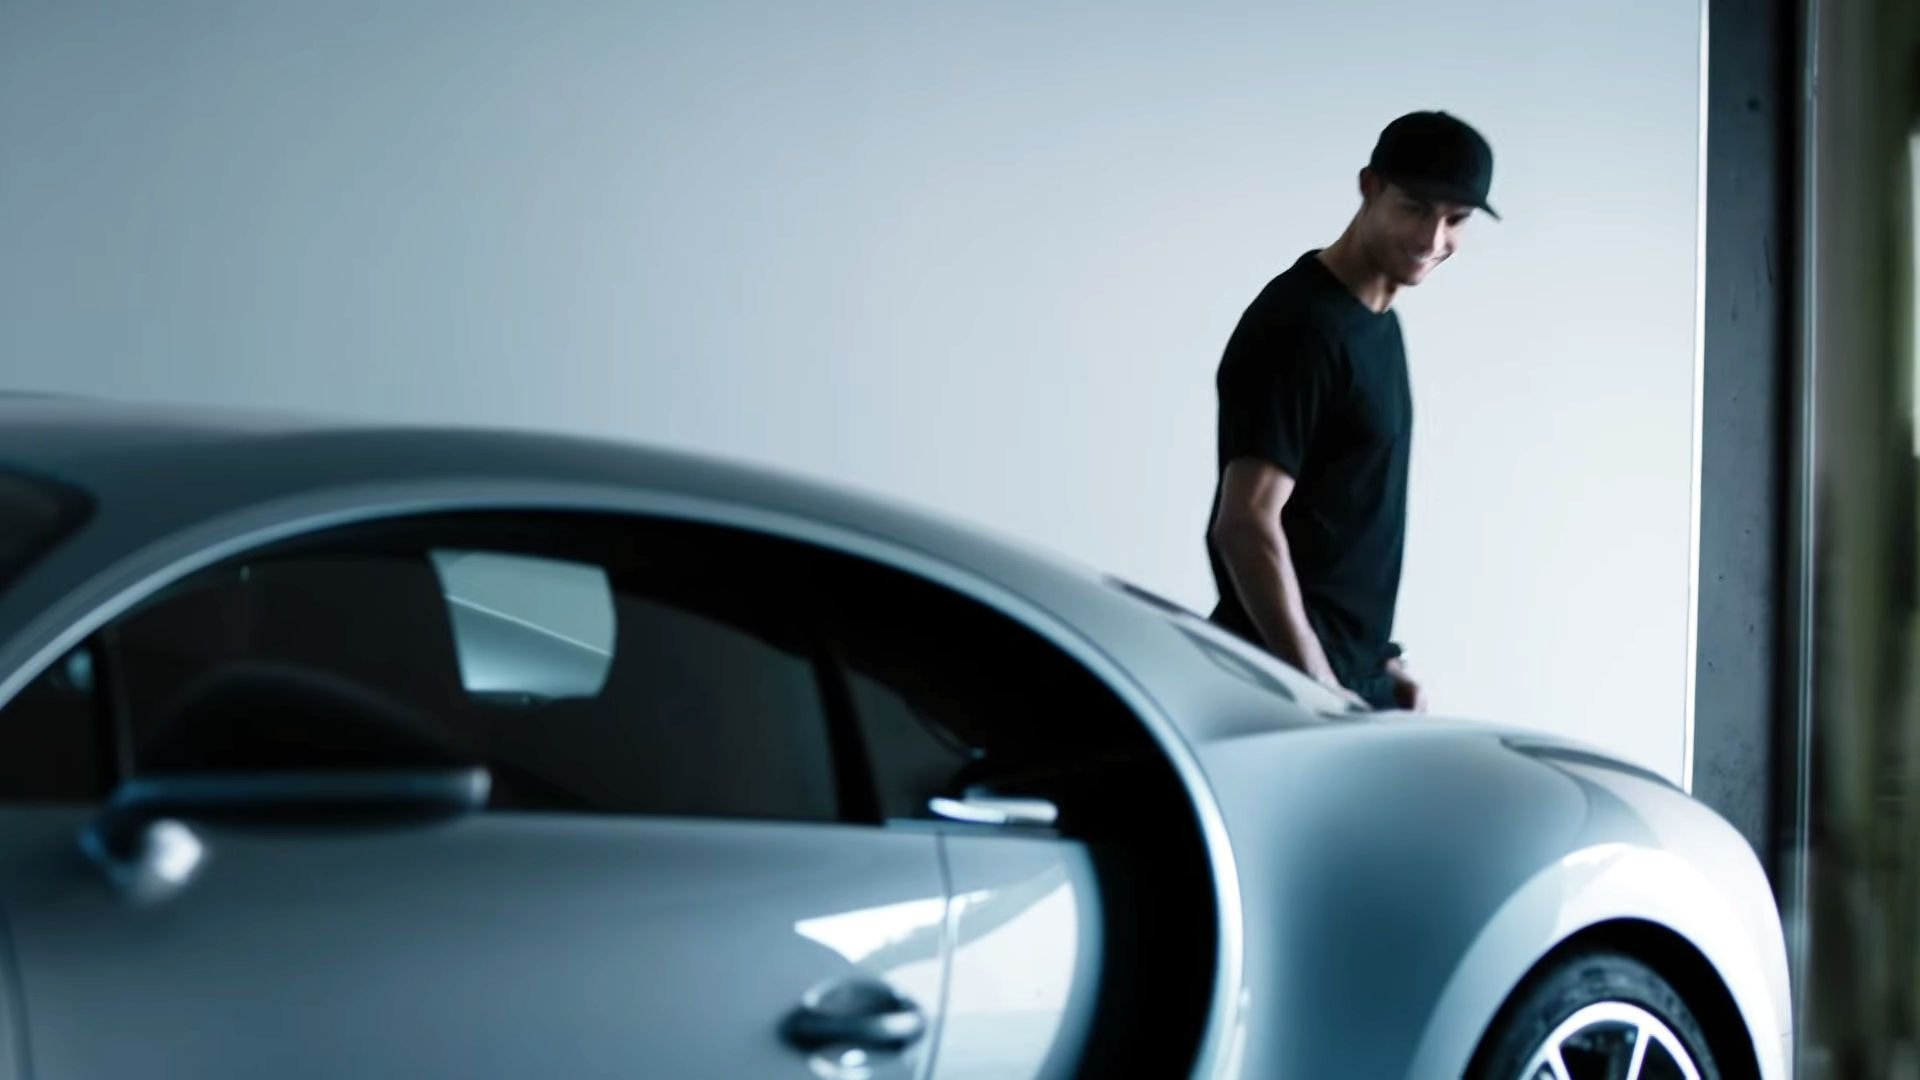 Ronaldo walked new Bugatti Veyron - a gift to himself for winning the Euro